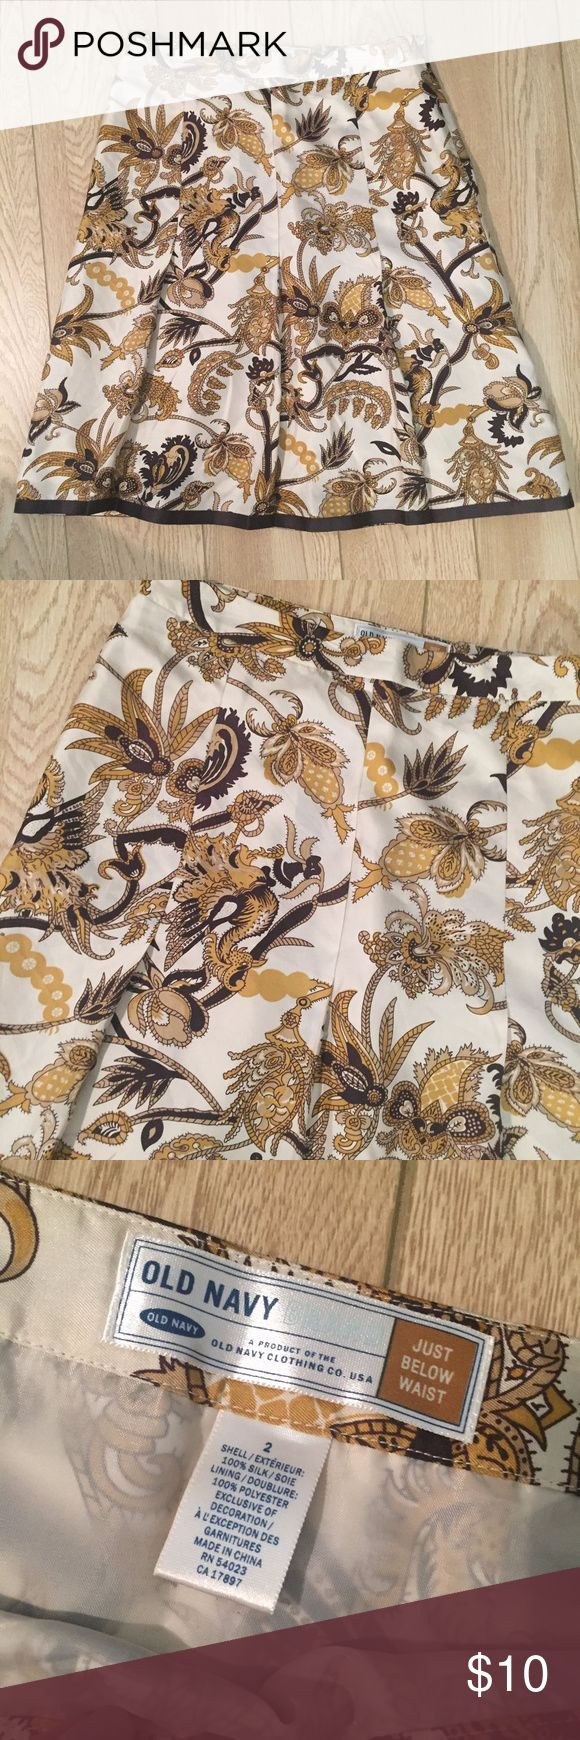 Silk Brown Gold Tan Print Skirt This skirt has a classic, fancy print. In great condition! Old Navy Skirts